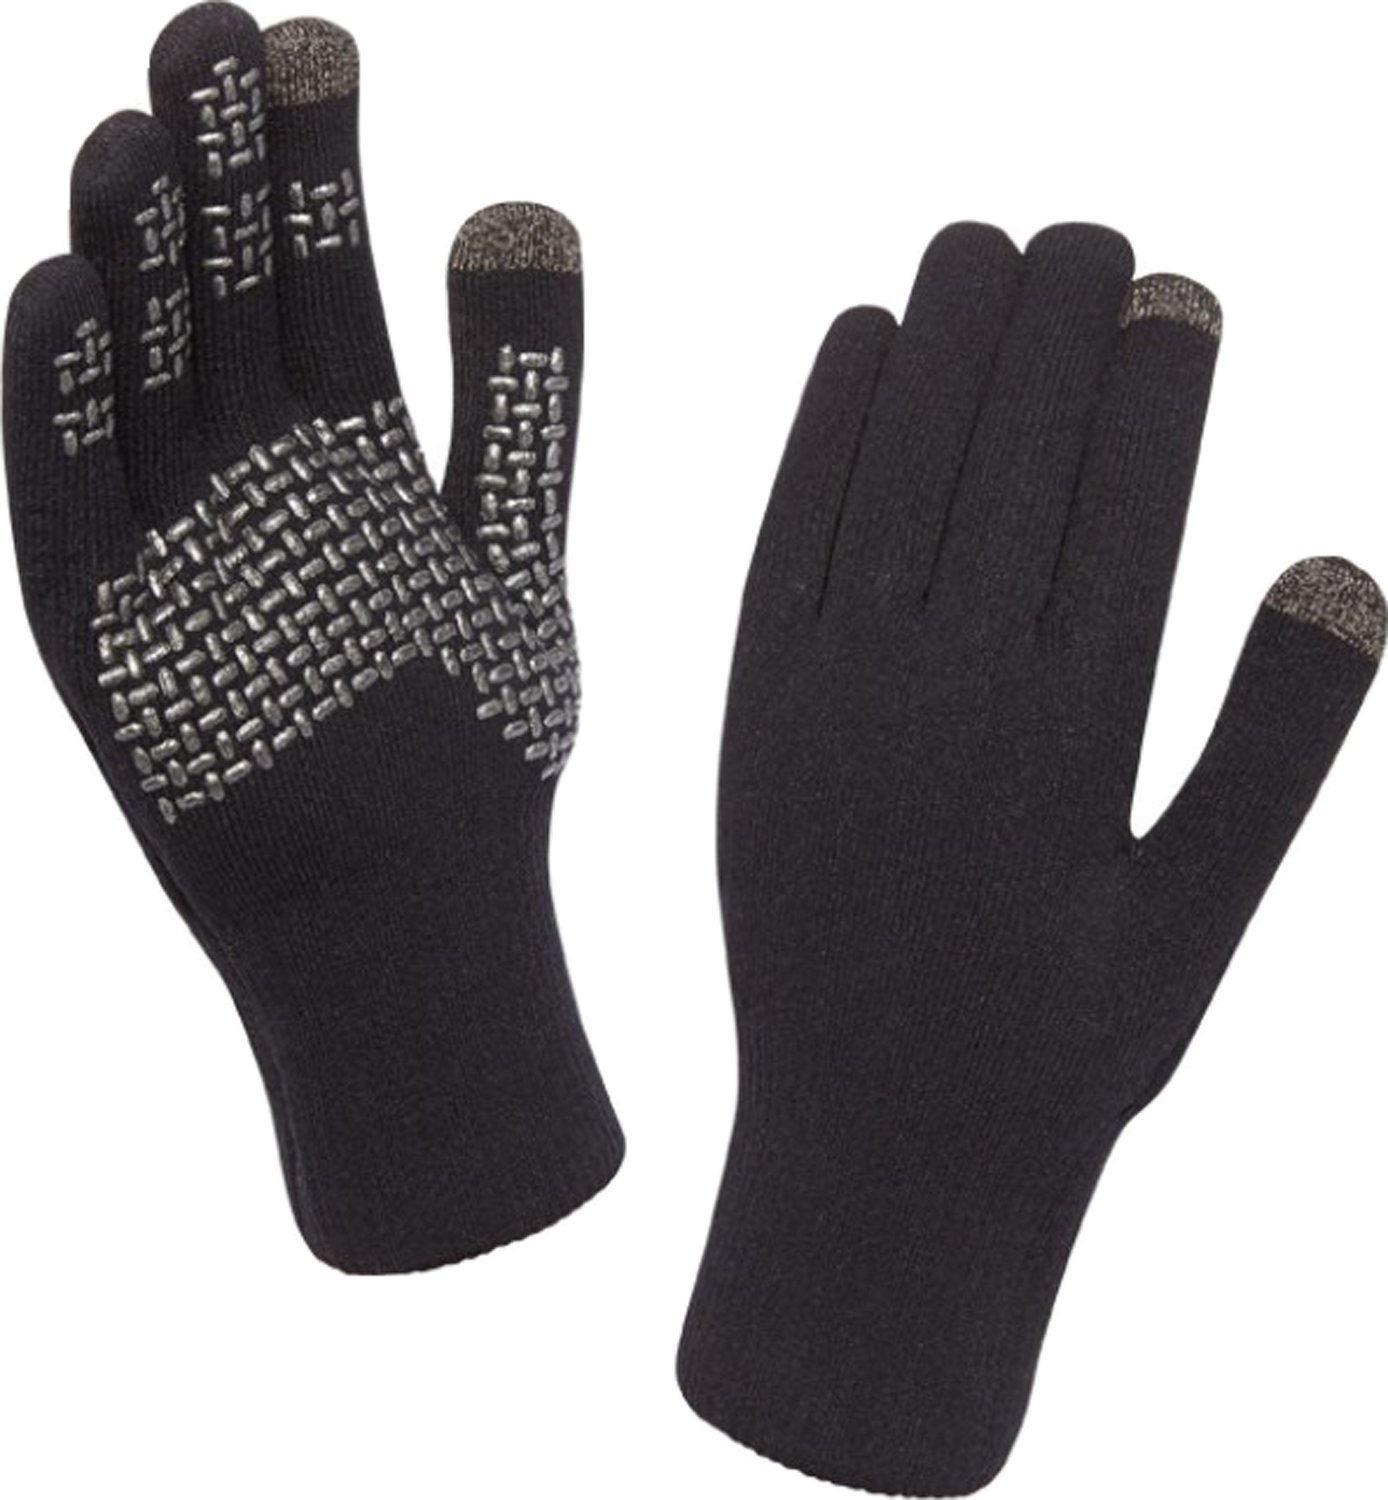 Sealskinz - Ultra Grip Touchscreen Glove, Color Plateado, Talla L: Amazon.es: Deportes y aire libre